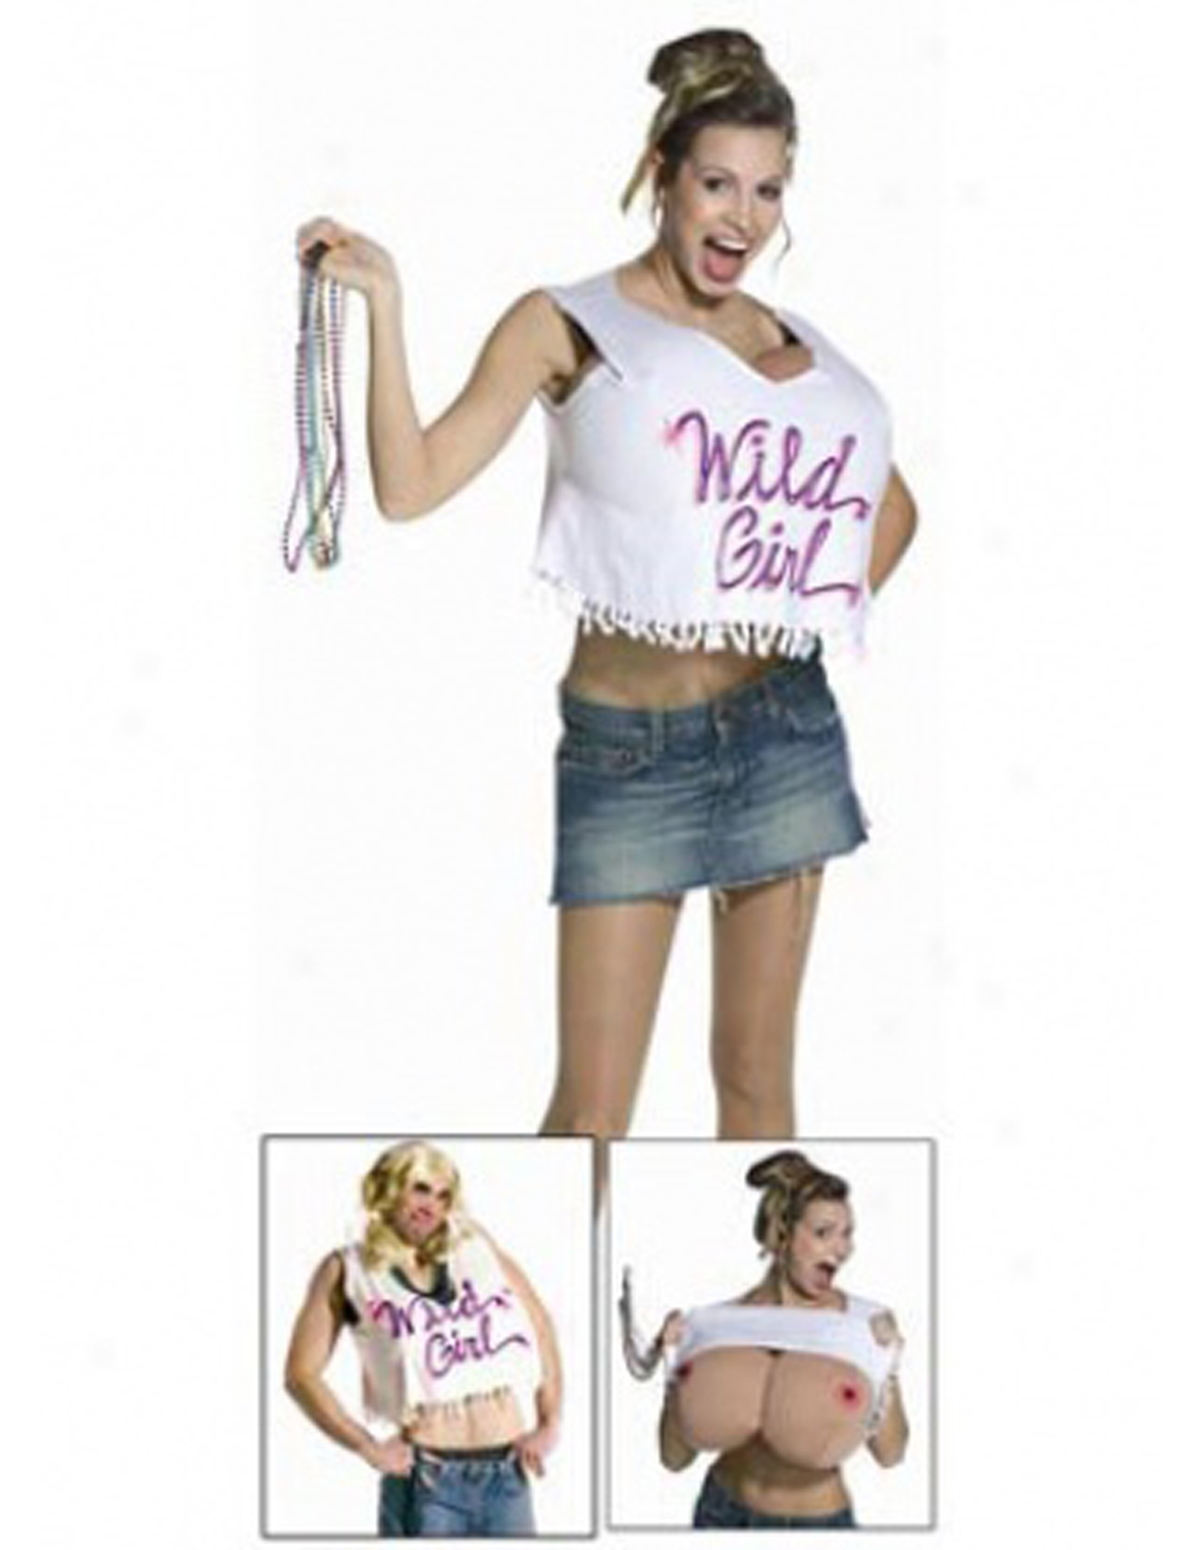 Wild Girl T-Shirt Costume